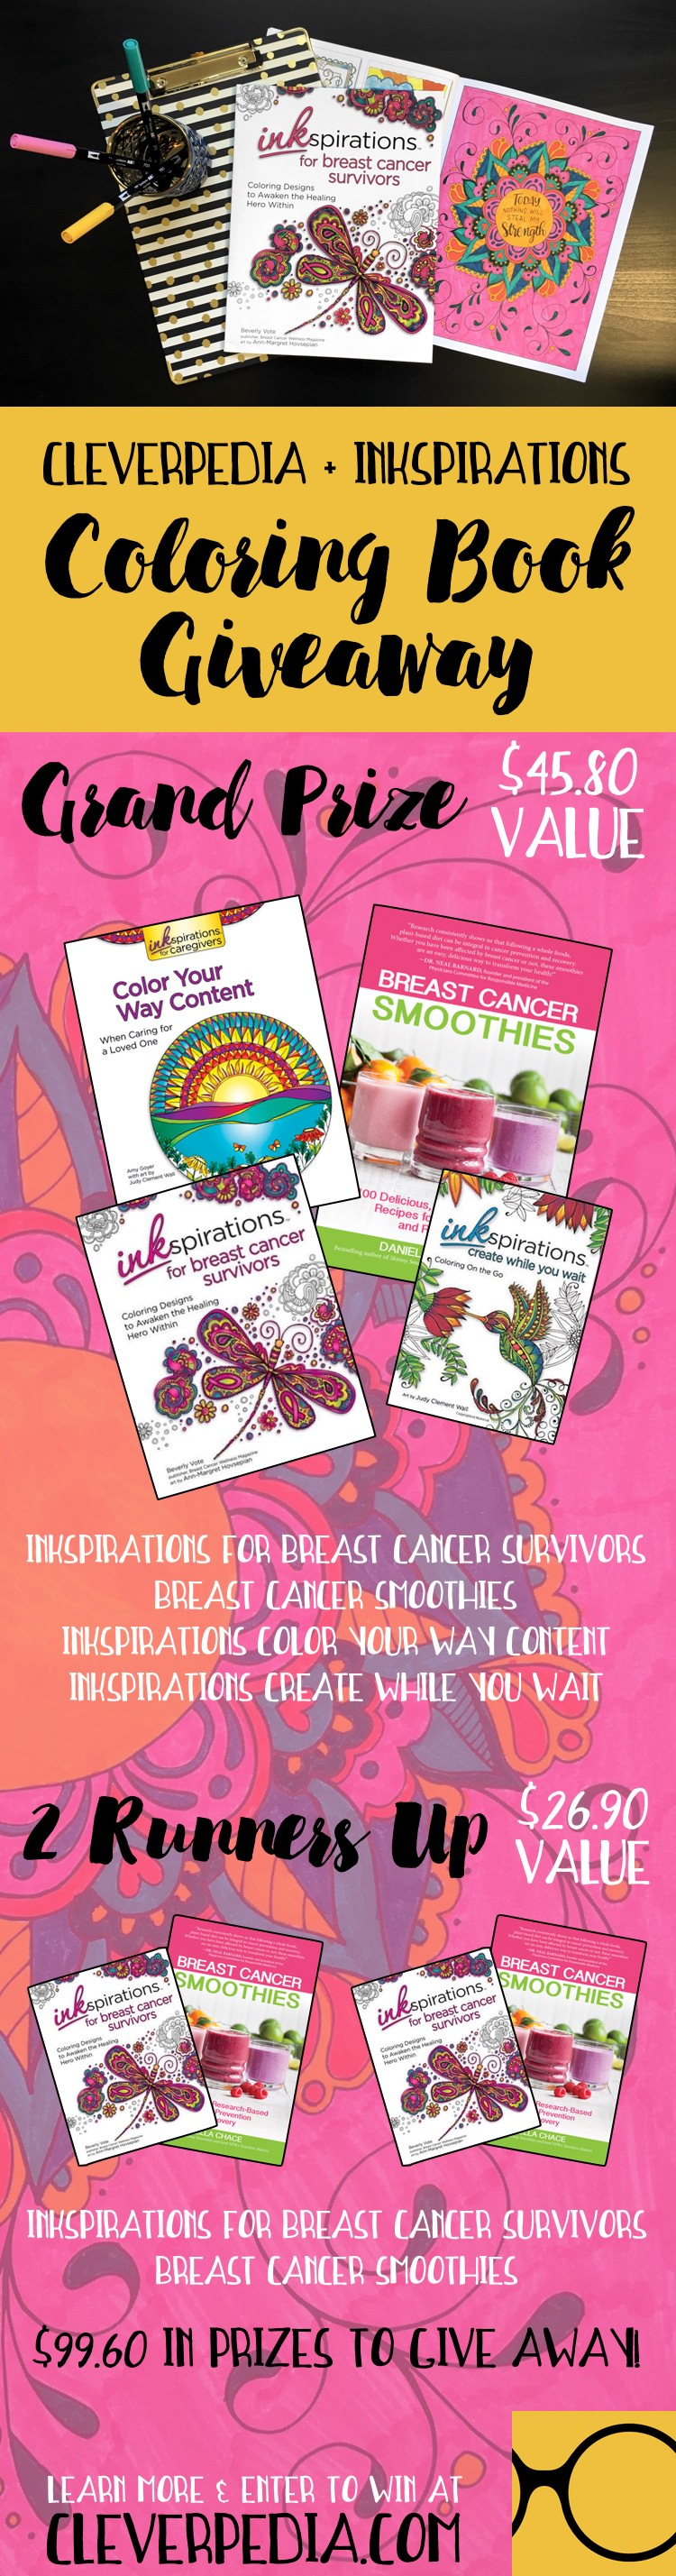 Inkspirations For Breast Cancer Survivors Is An Adult Coloring Book Designed To Encourage And Empower Women